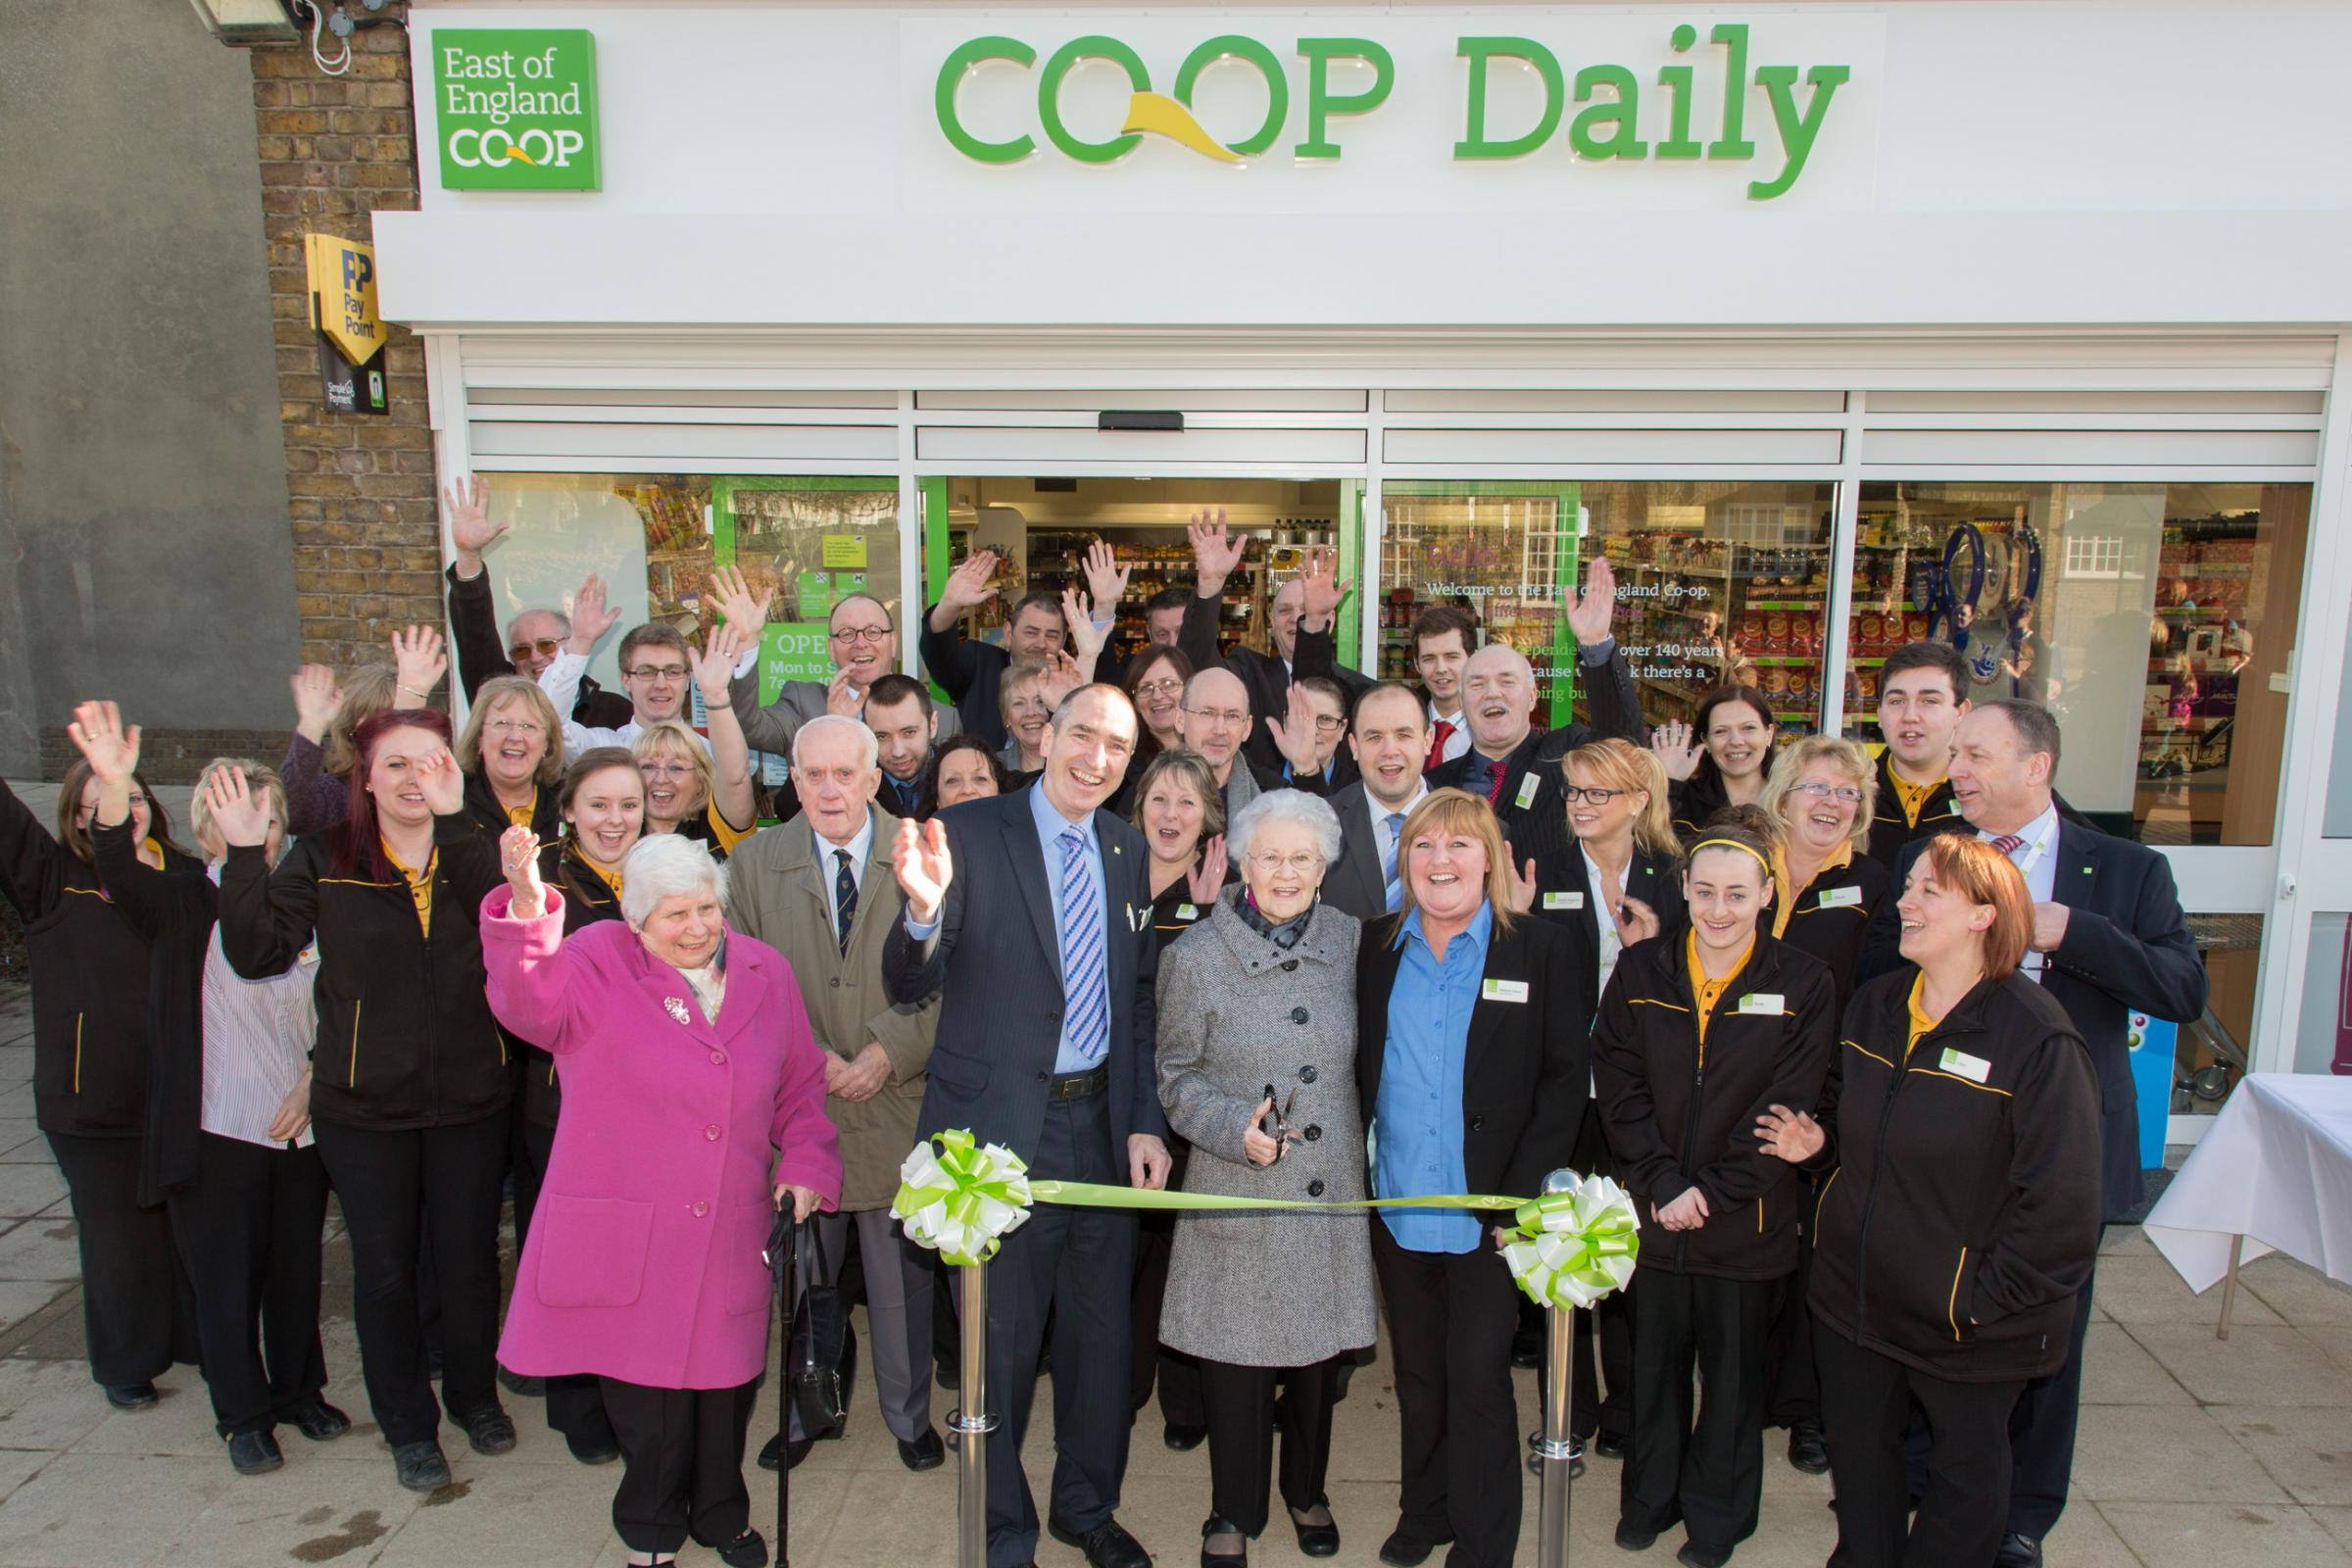 Former Co-op worker reopens store after £500k refurb